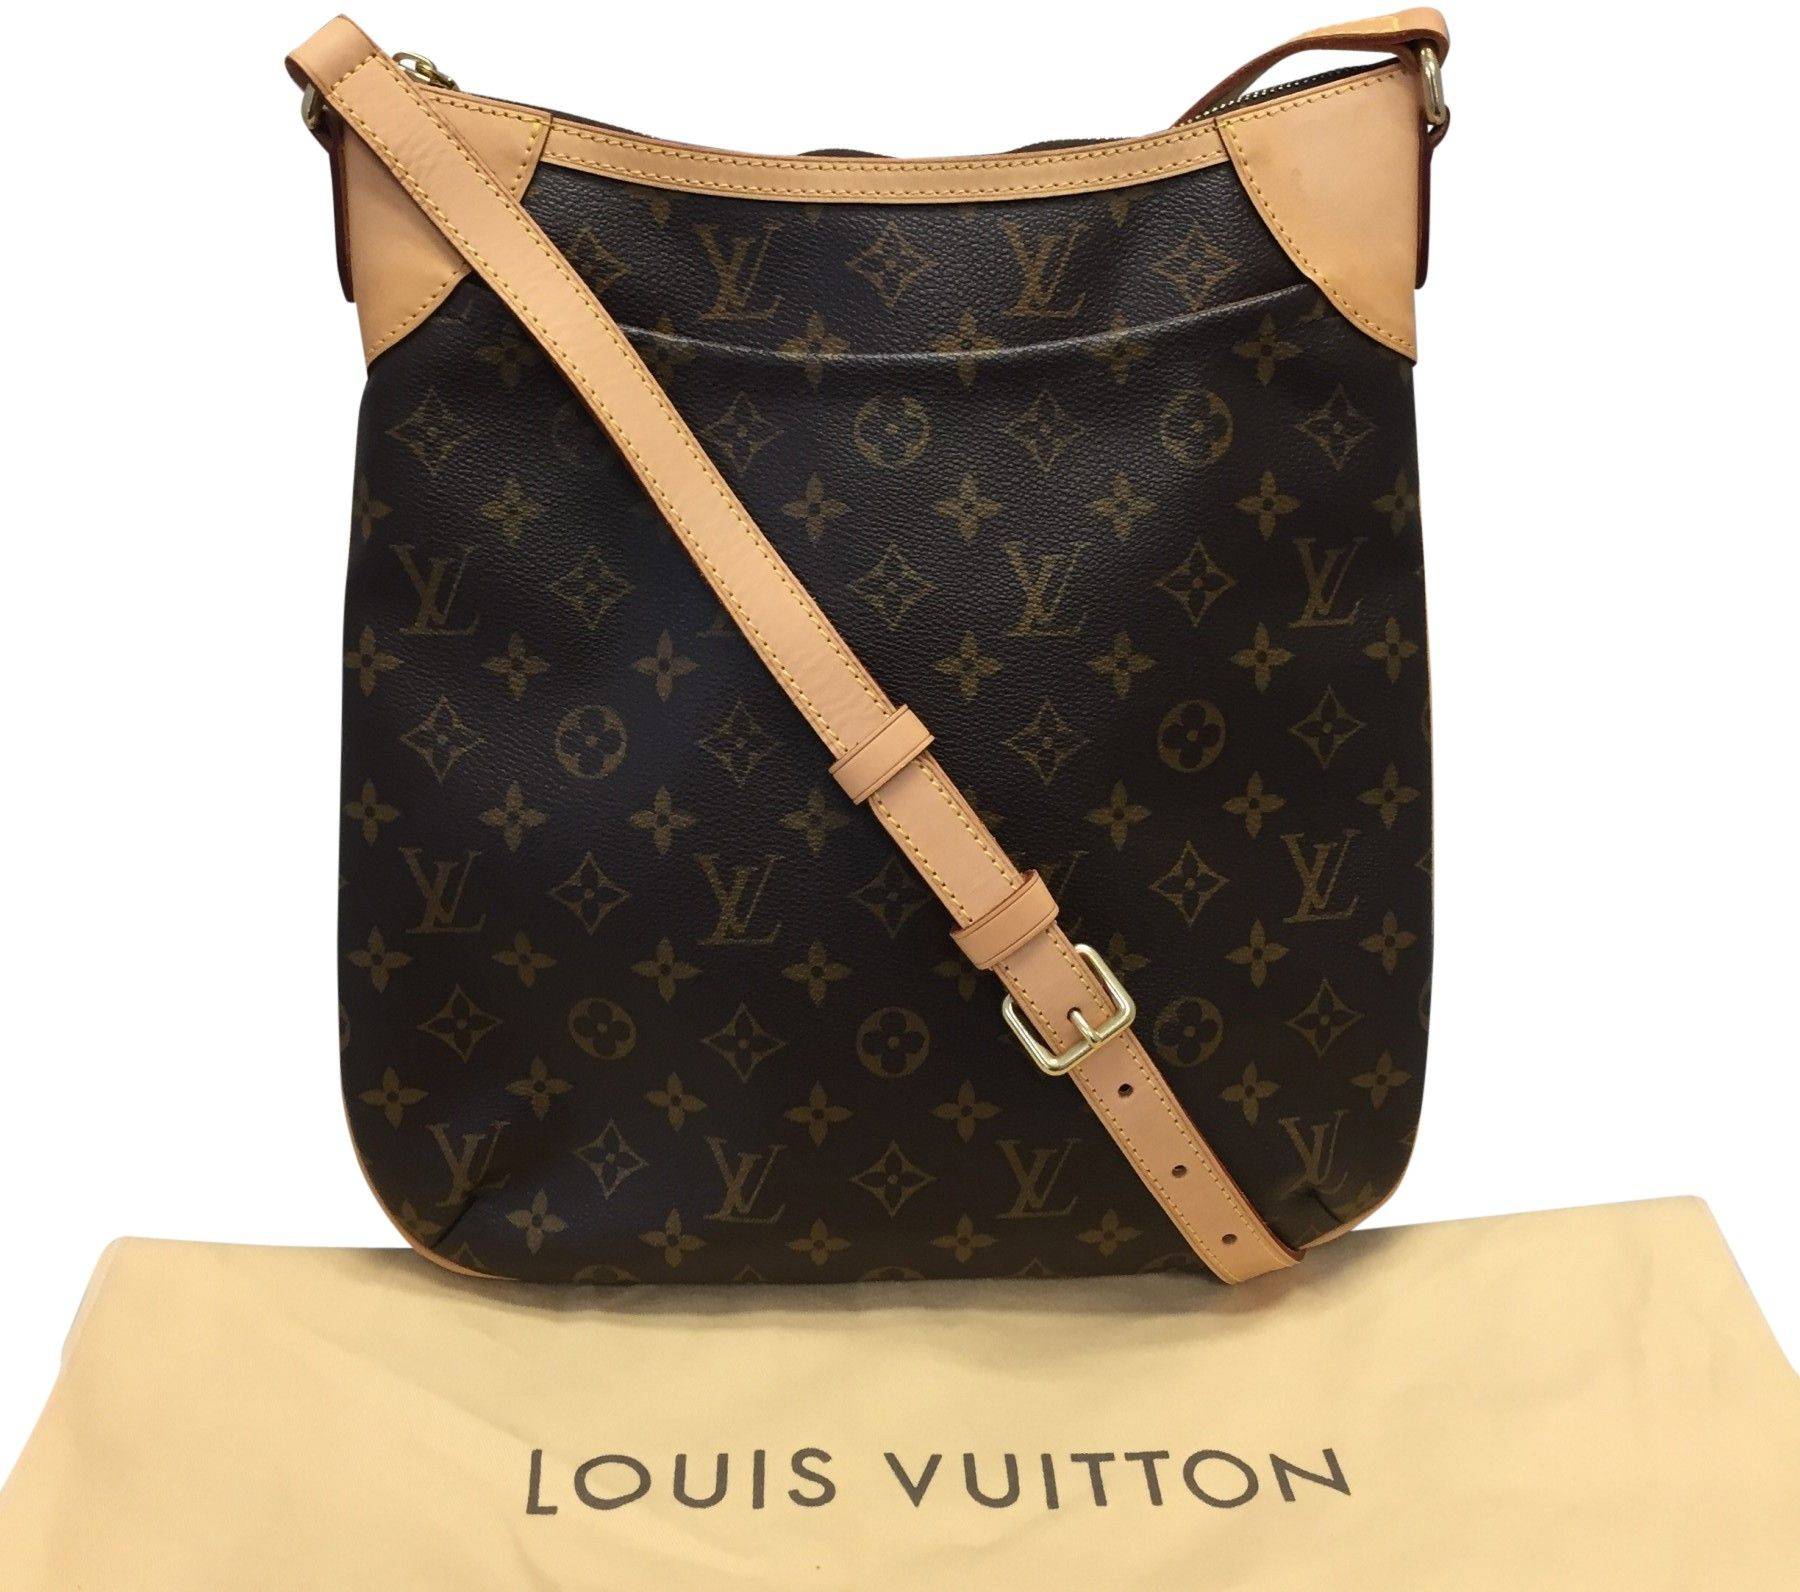 Louis Vuitton Odeon MM Monogram Alex this is the perfect